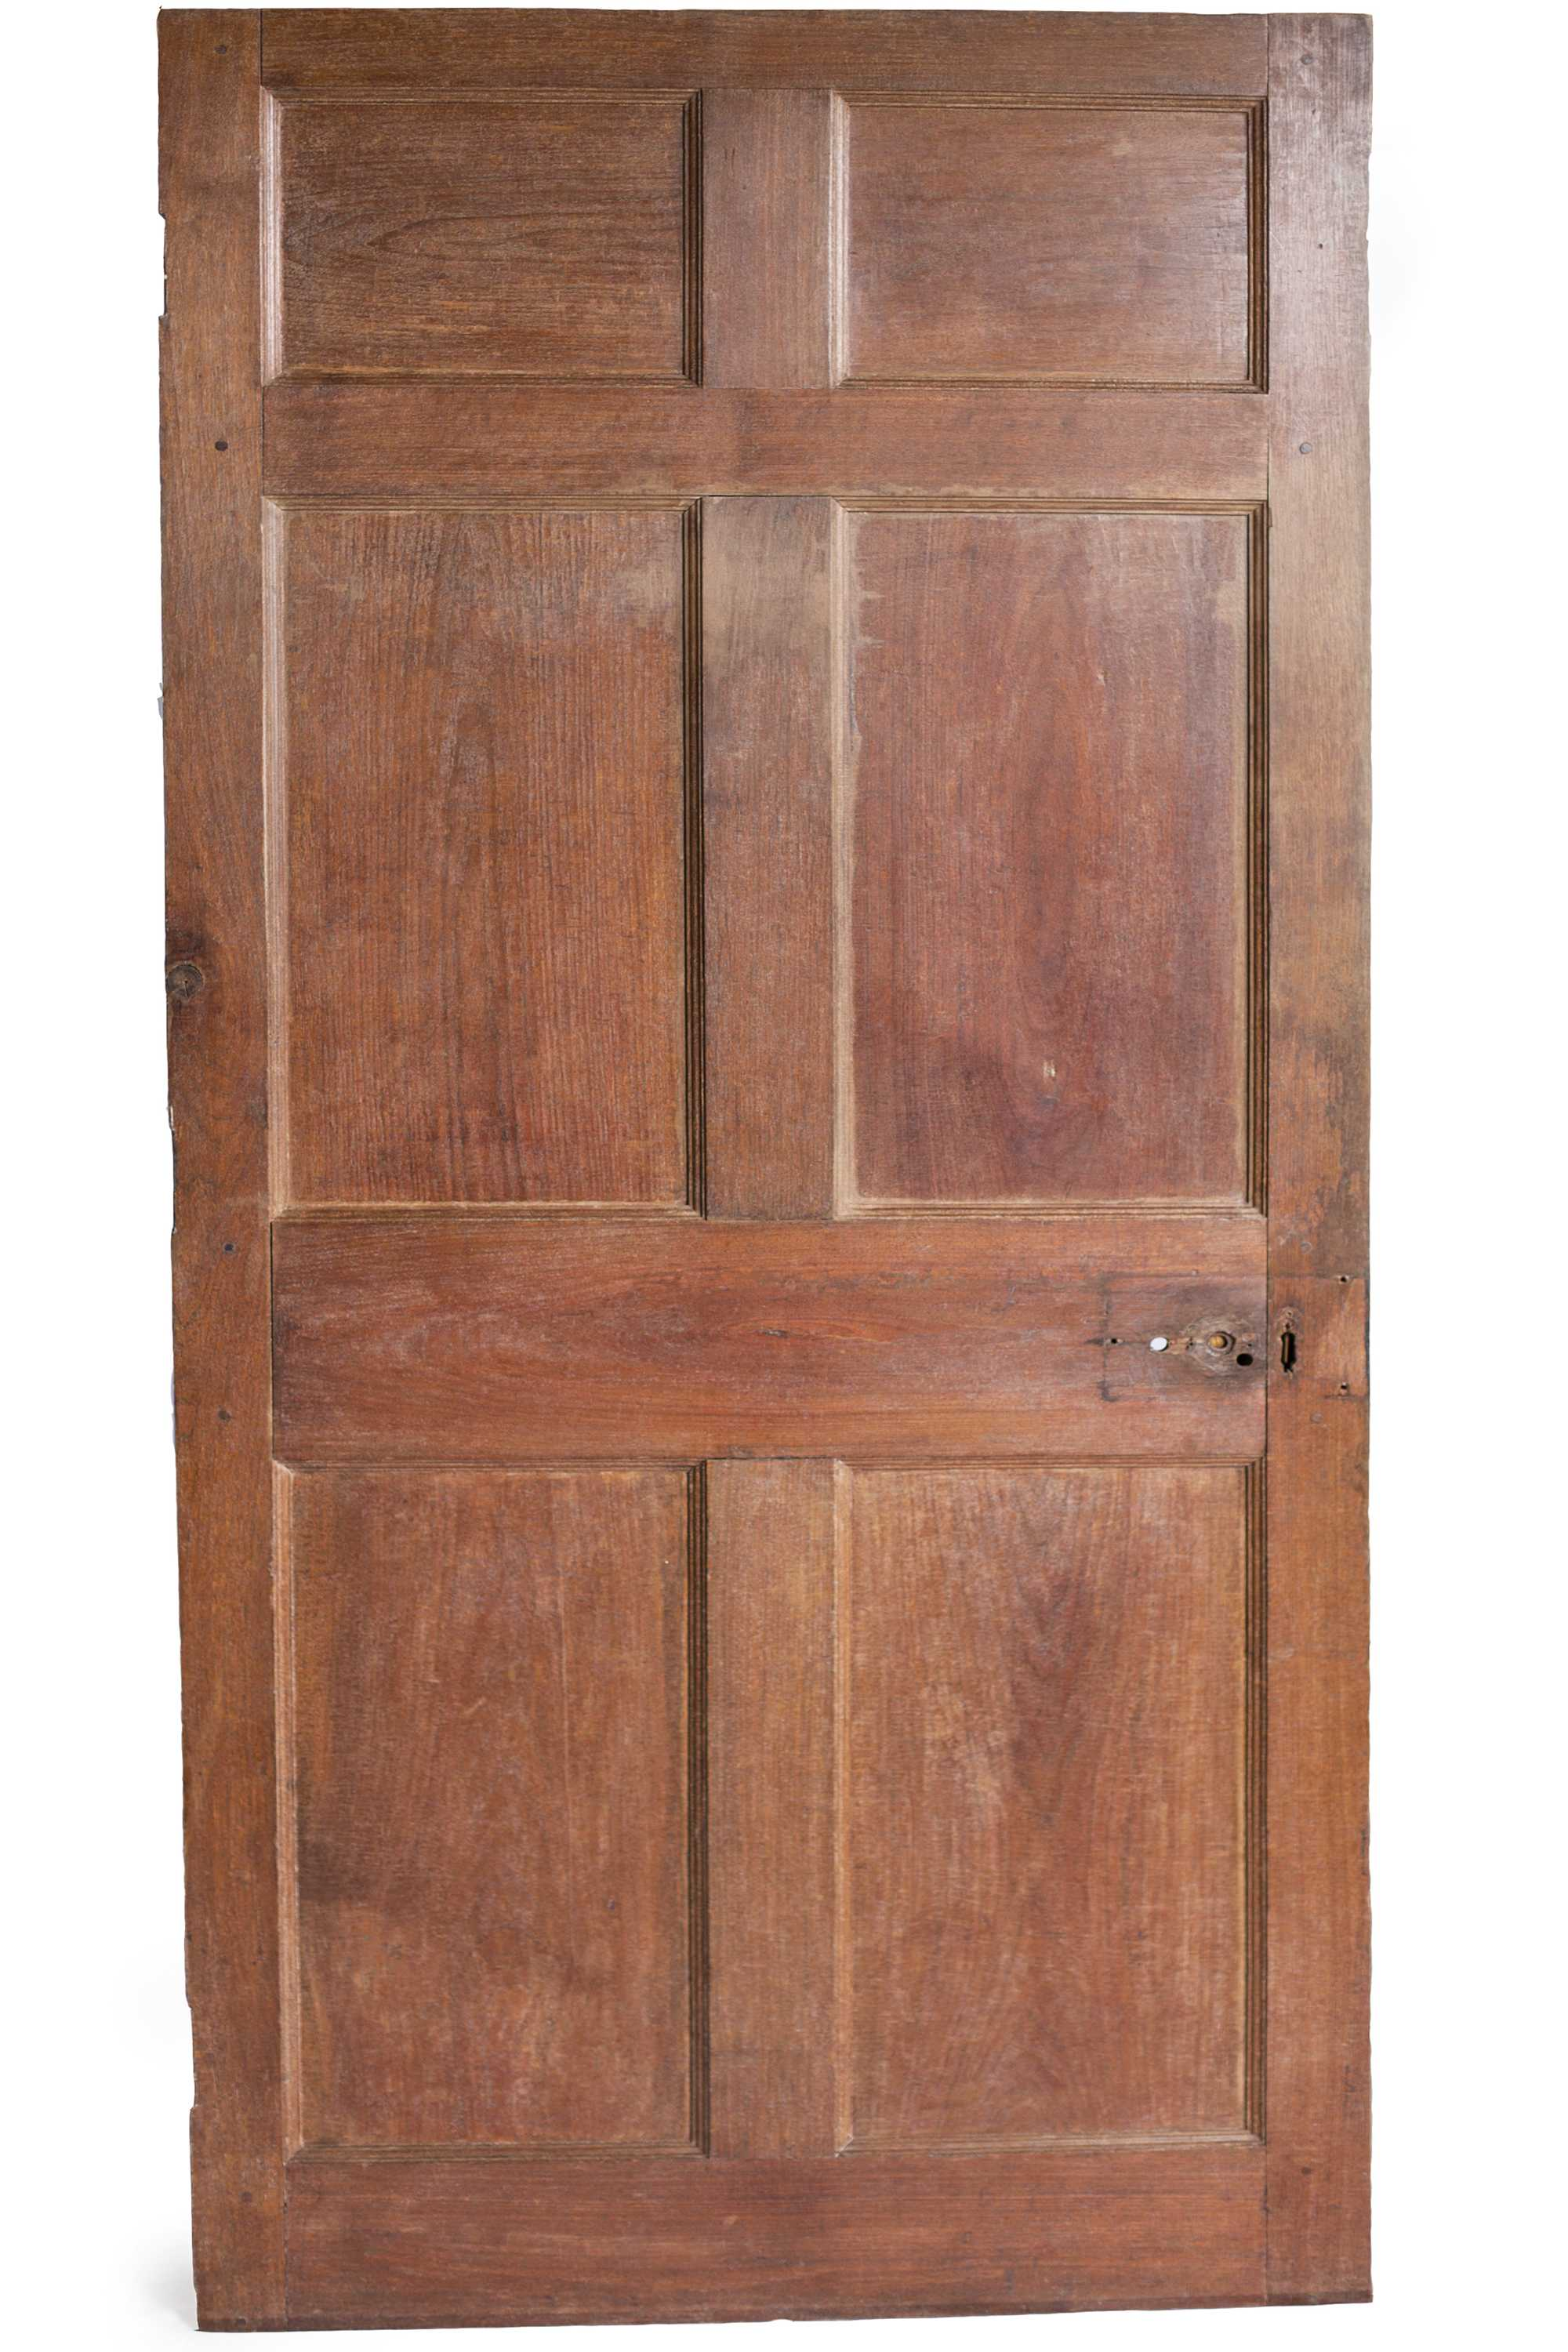 John Hemings (American, 1776−1833) Paneled Door for Jefferson's Poplar Forest, 1809−1819 Varnished walnut Courtesy of Thomas Jefferson's Poplar Forest